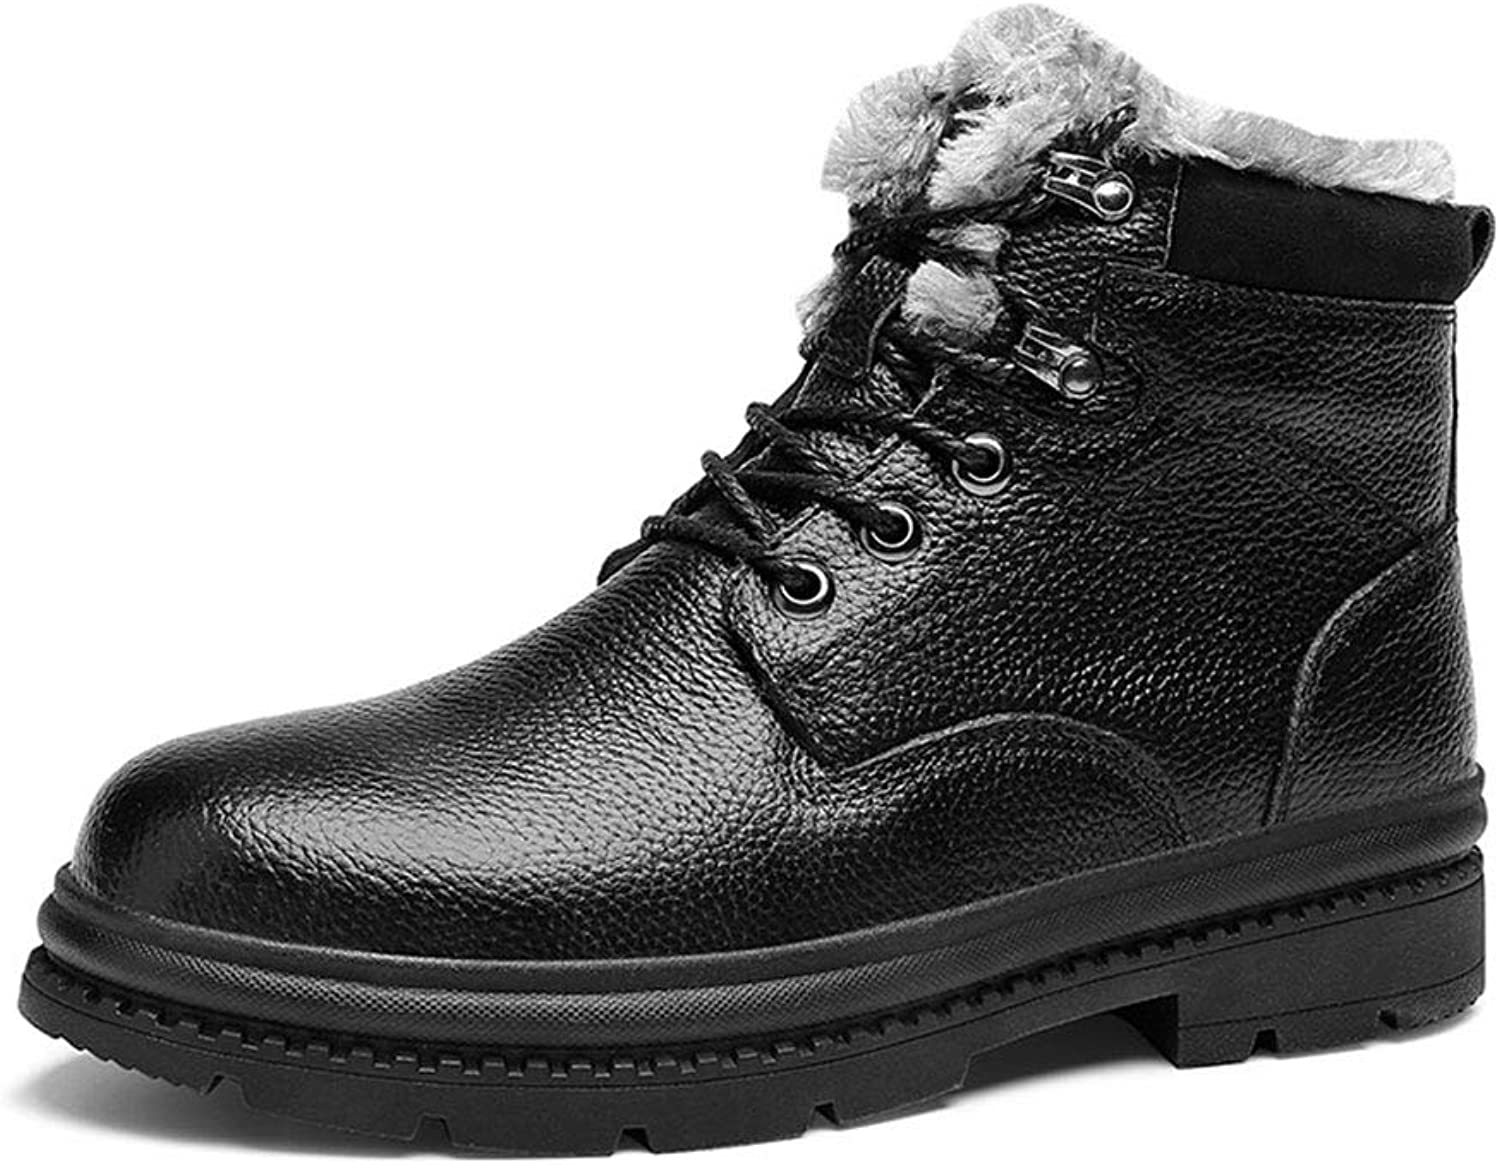 Tlgf High Rise Boots,Men's Leather Walking Hiking shoes,Winter Snow Boots,Waterproof Trekking Comfort shoes, Rubber Sole